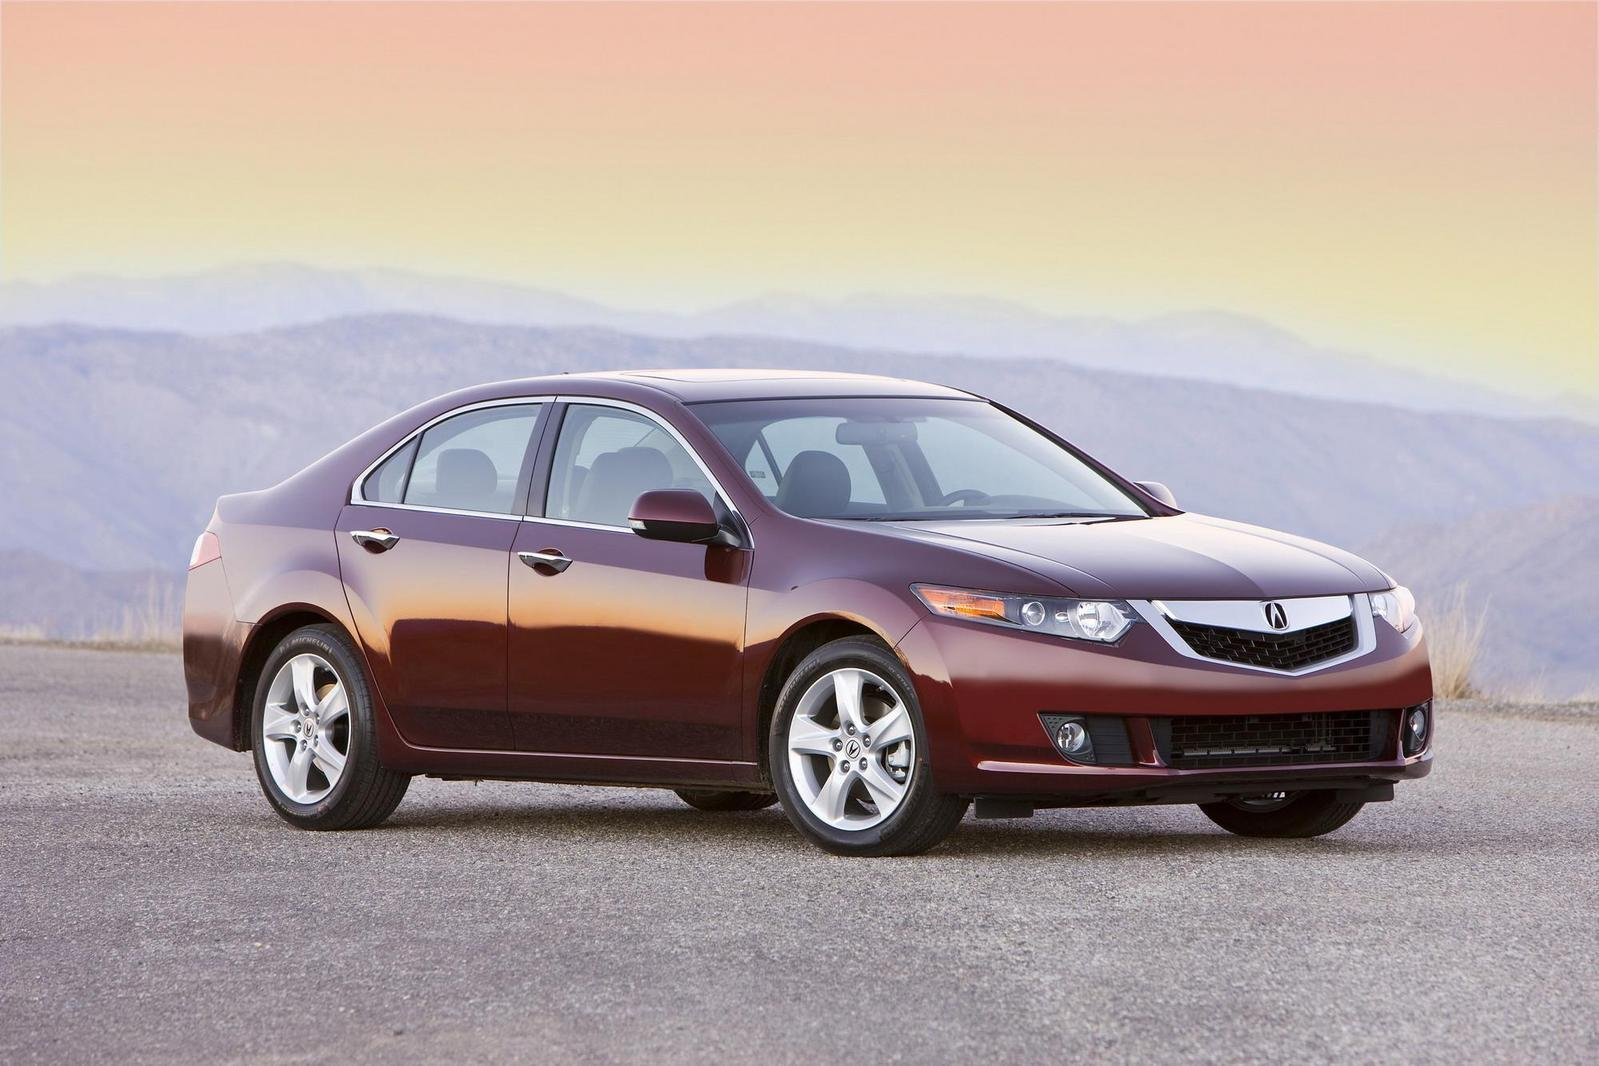 2010 acura tsx picture 325707 car review top speed. Black Bedroom Furniture Sets. Home Design Ideas